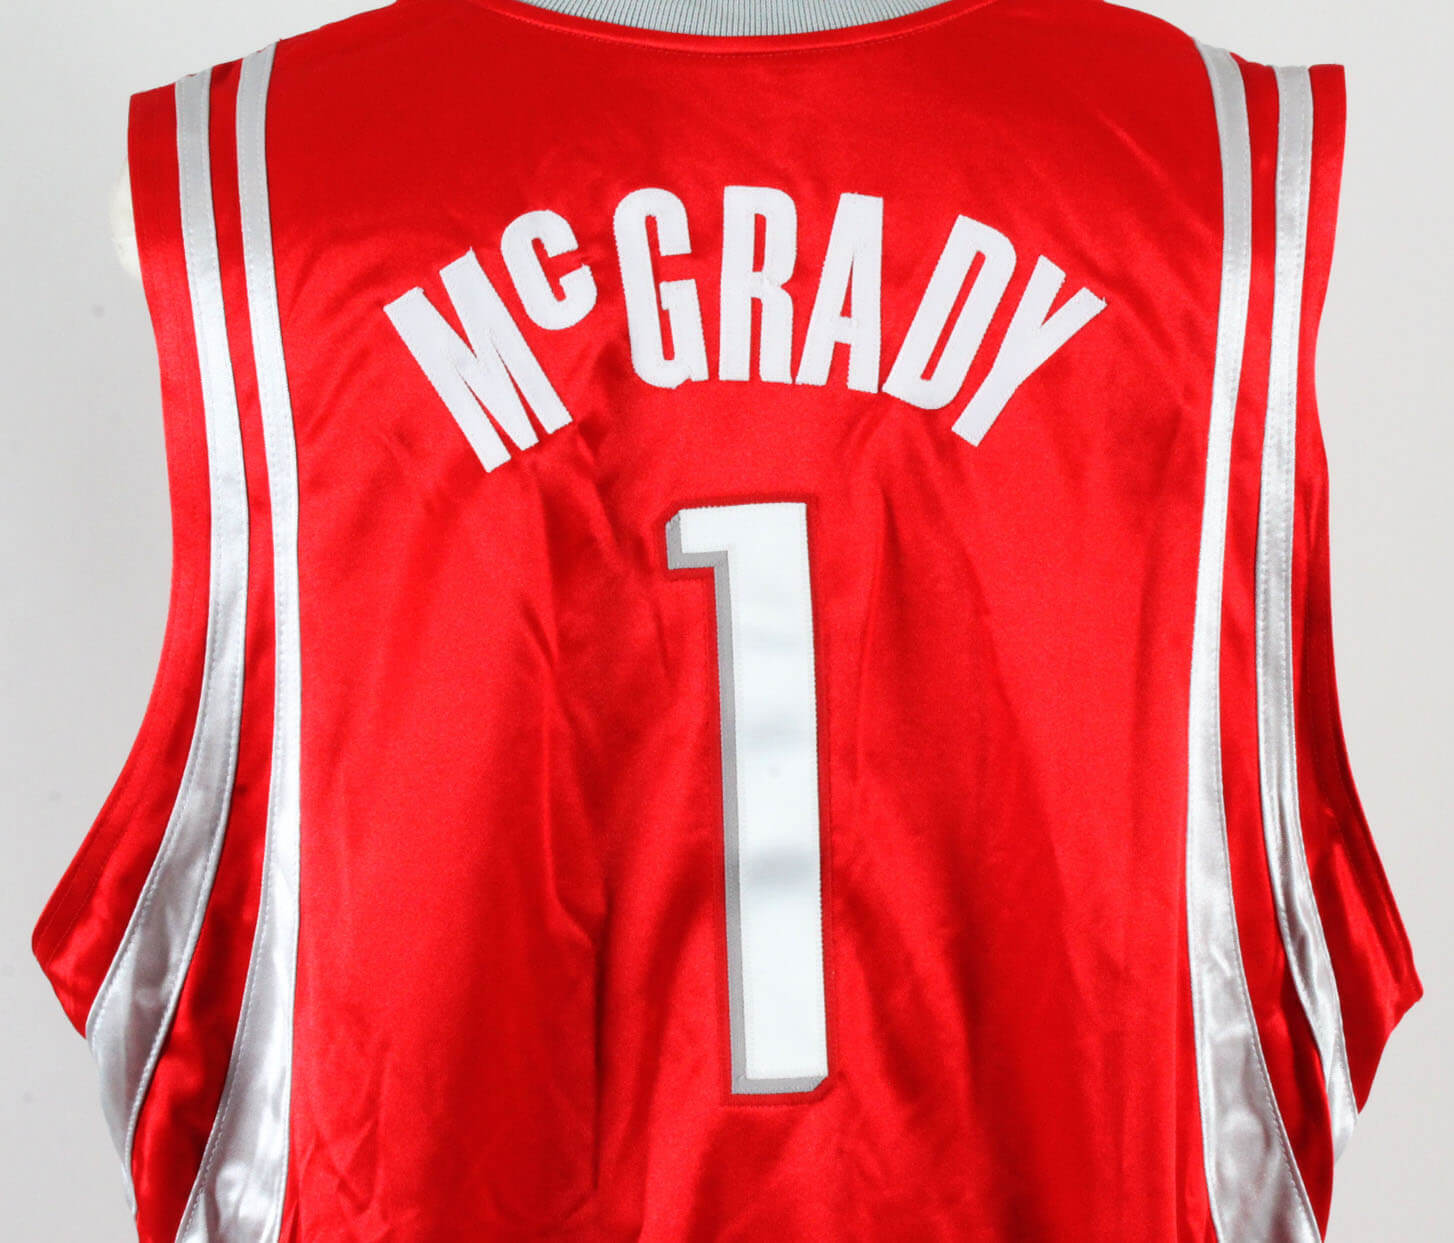 online retailer 9bc62 f81dc 2005-06 Tracy McGrady Game-Worn Jersey Rockets – COA ...